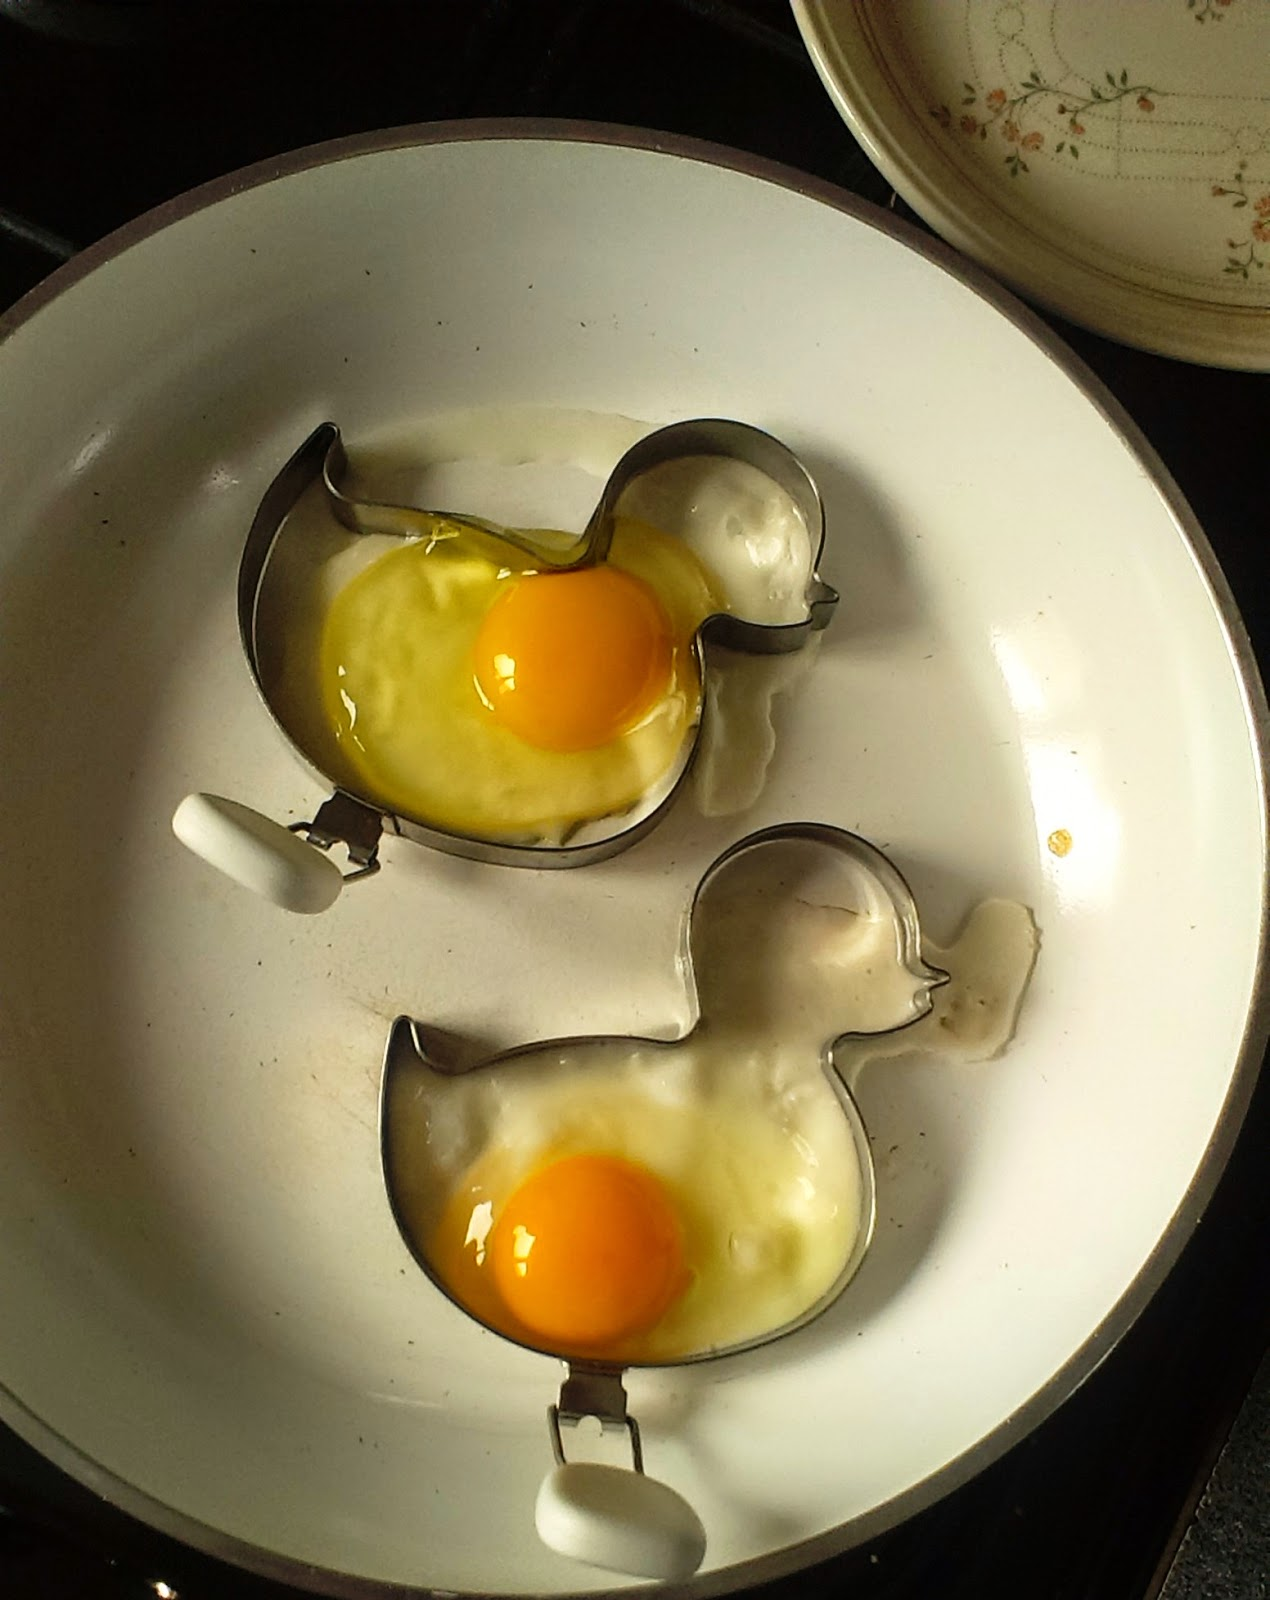 Fried egg ducks